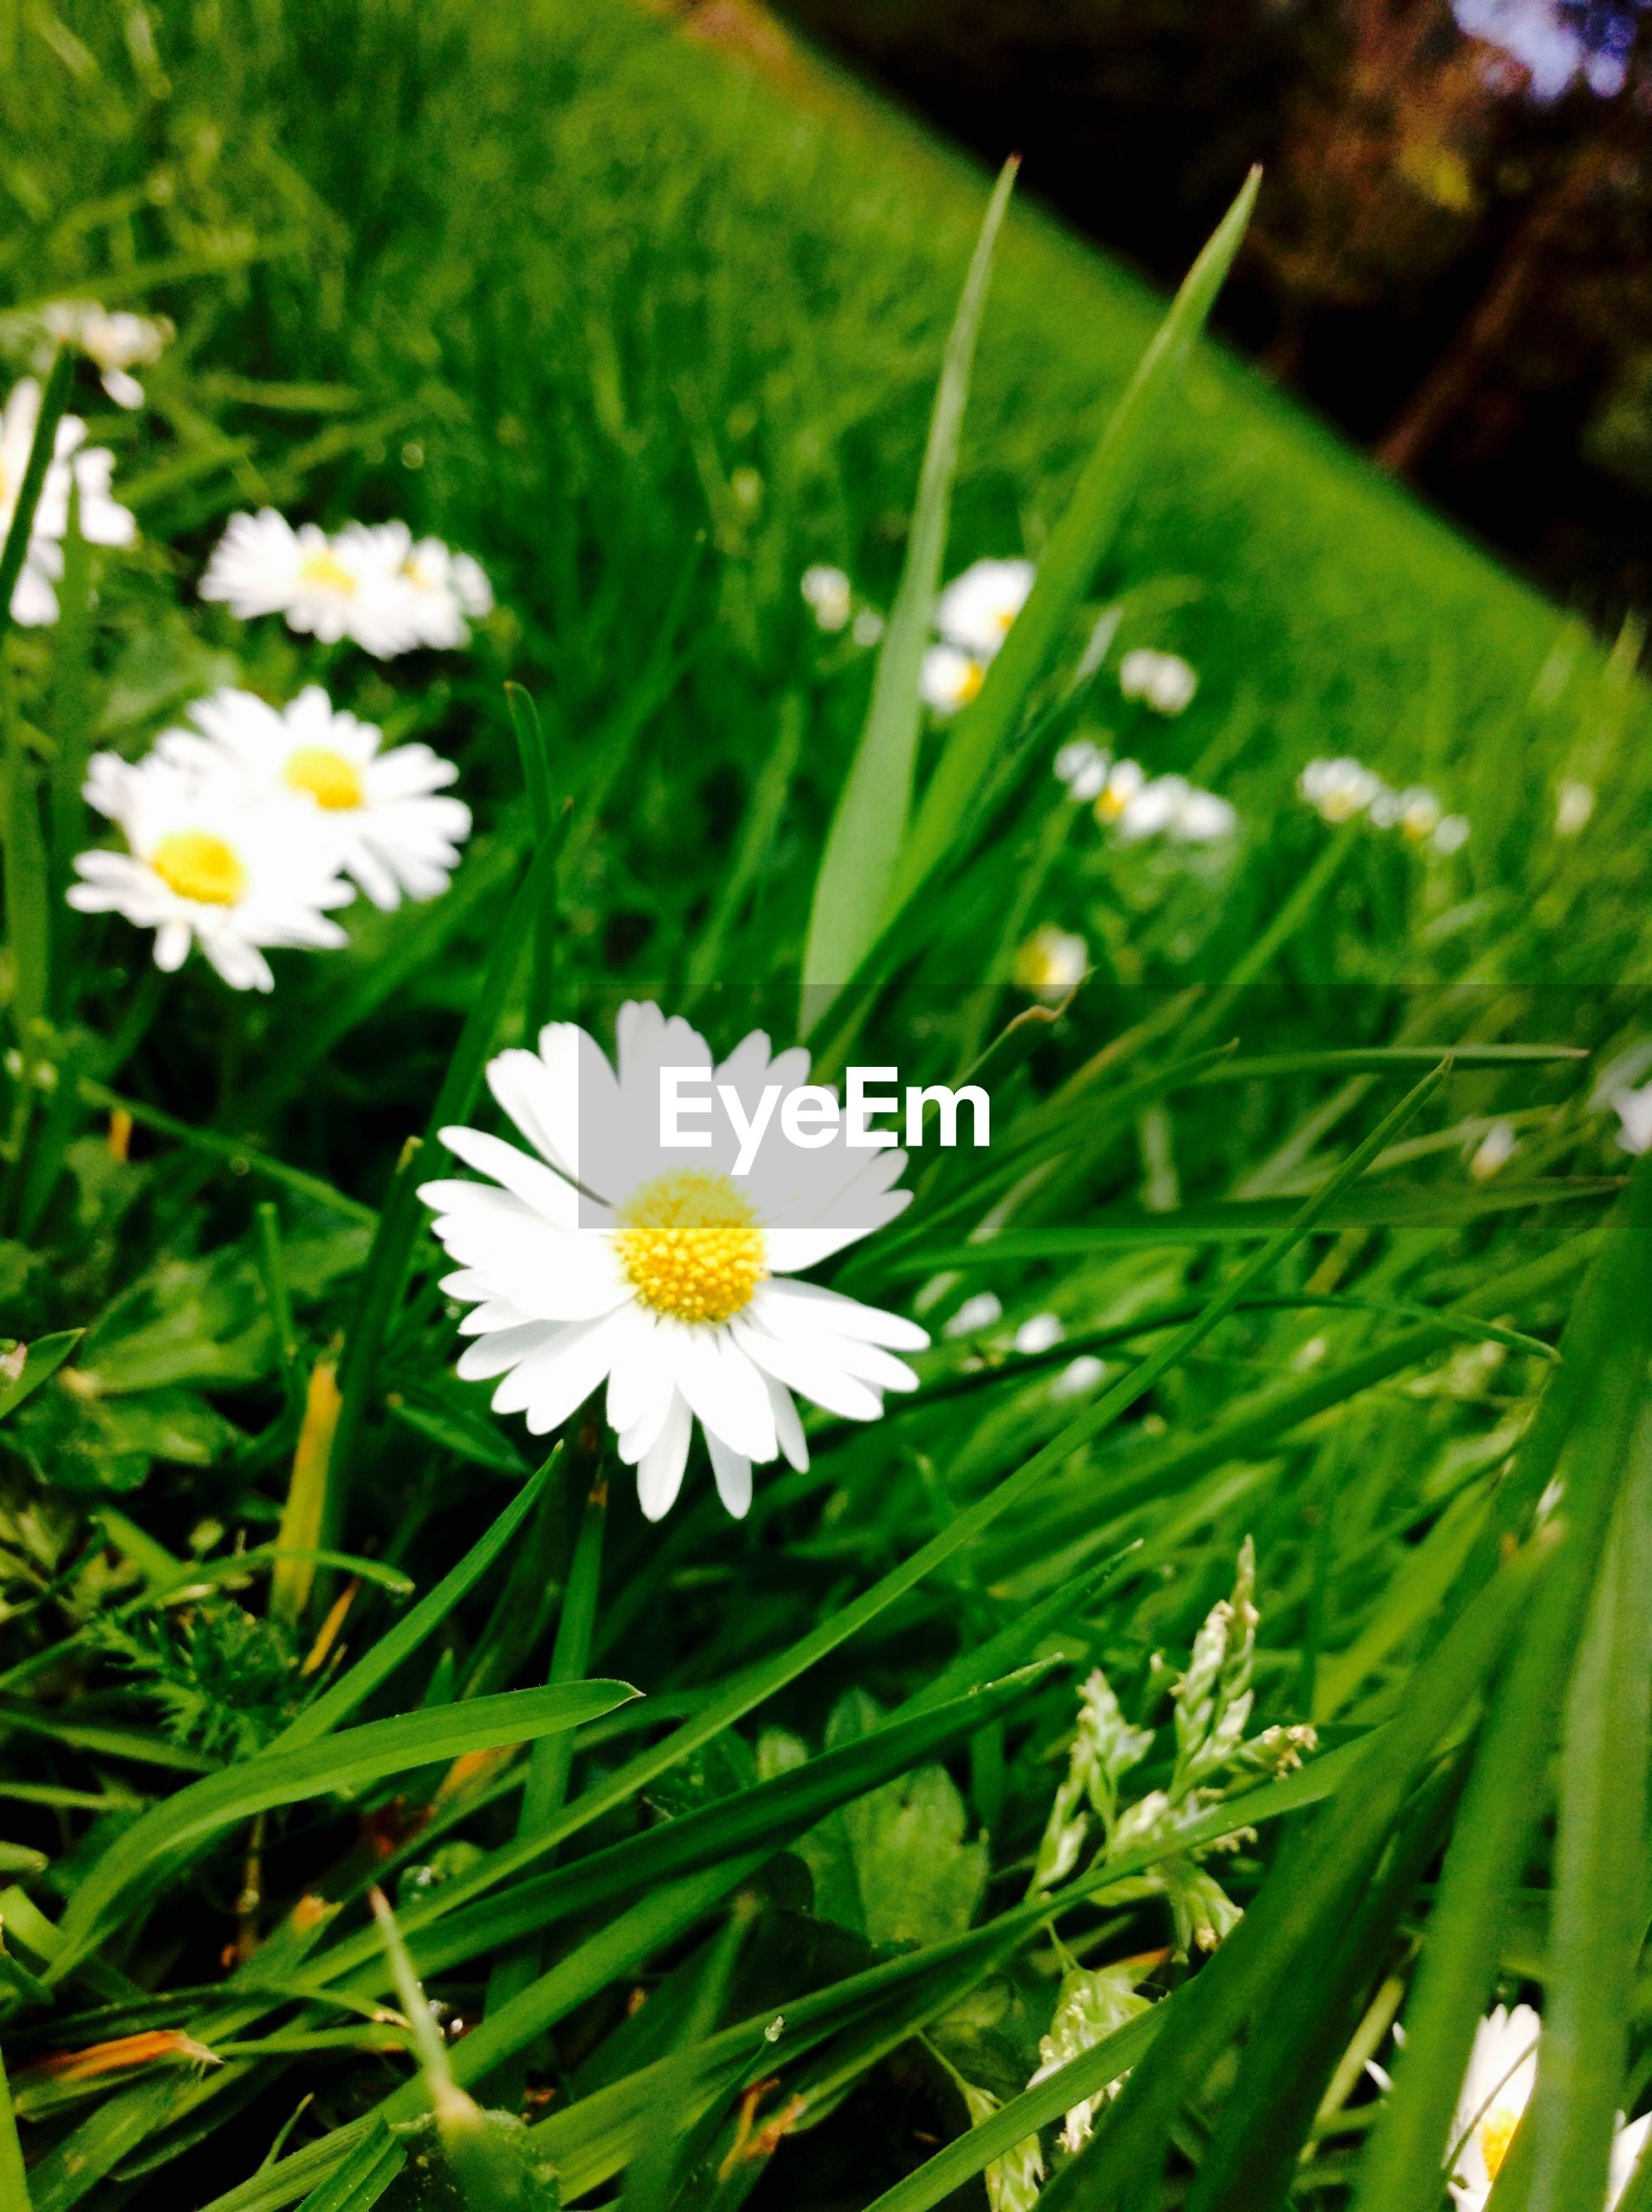 flower, freshness, fragility, growth, petal, white color, flower head, beauty in nature, daisy, green color, blooming, nature, plant, field, grass, focus on foreground, close-up, in bloom, yellow, high angle view